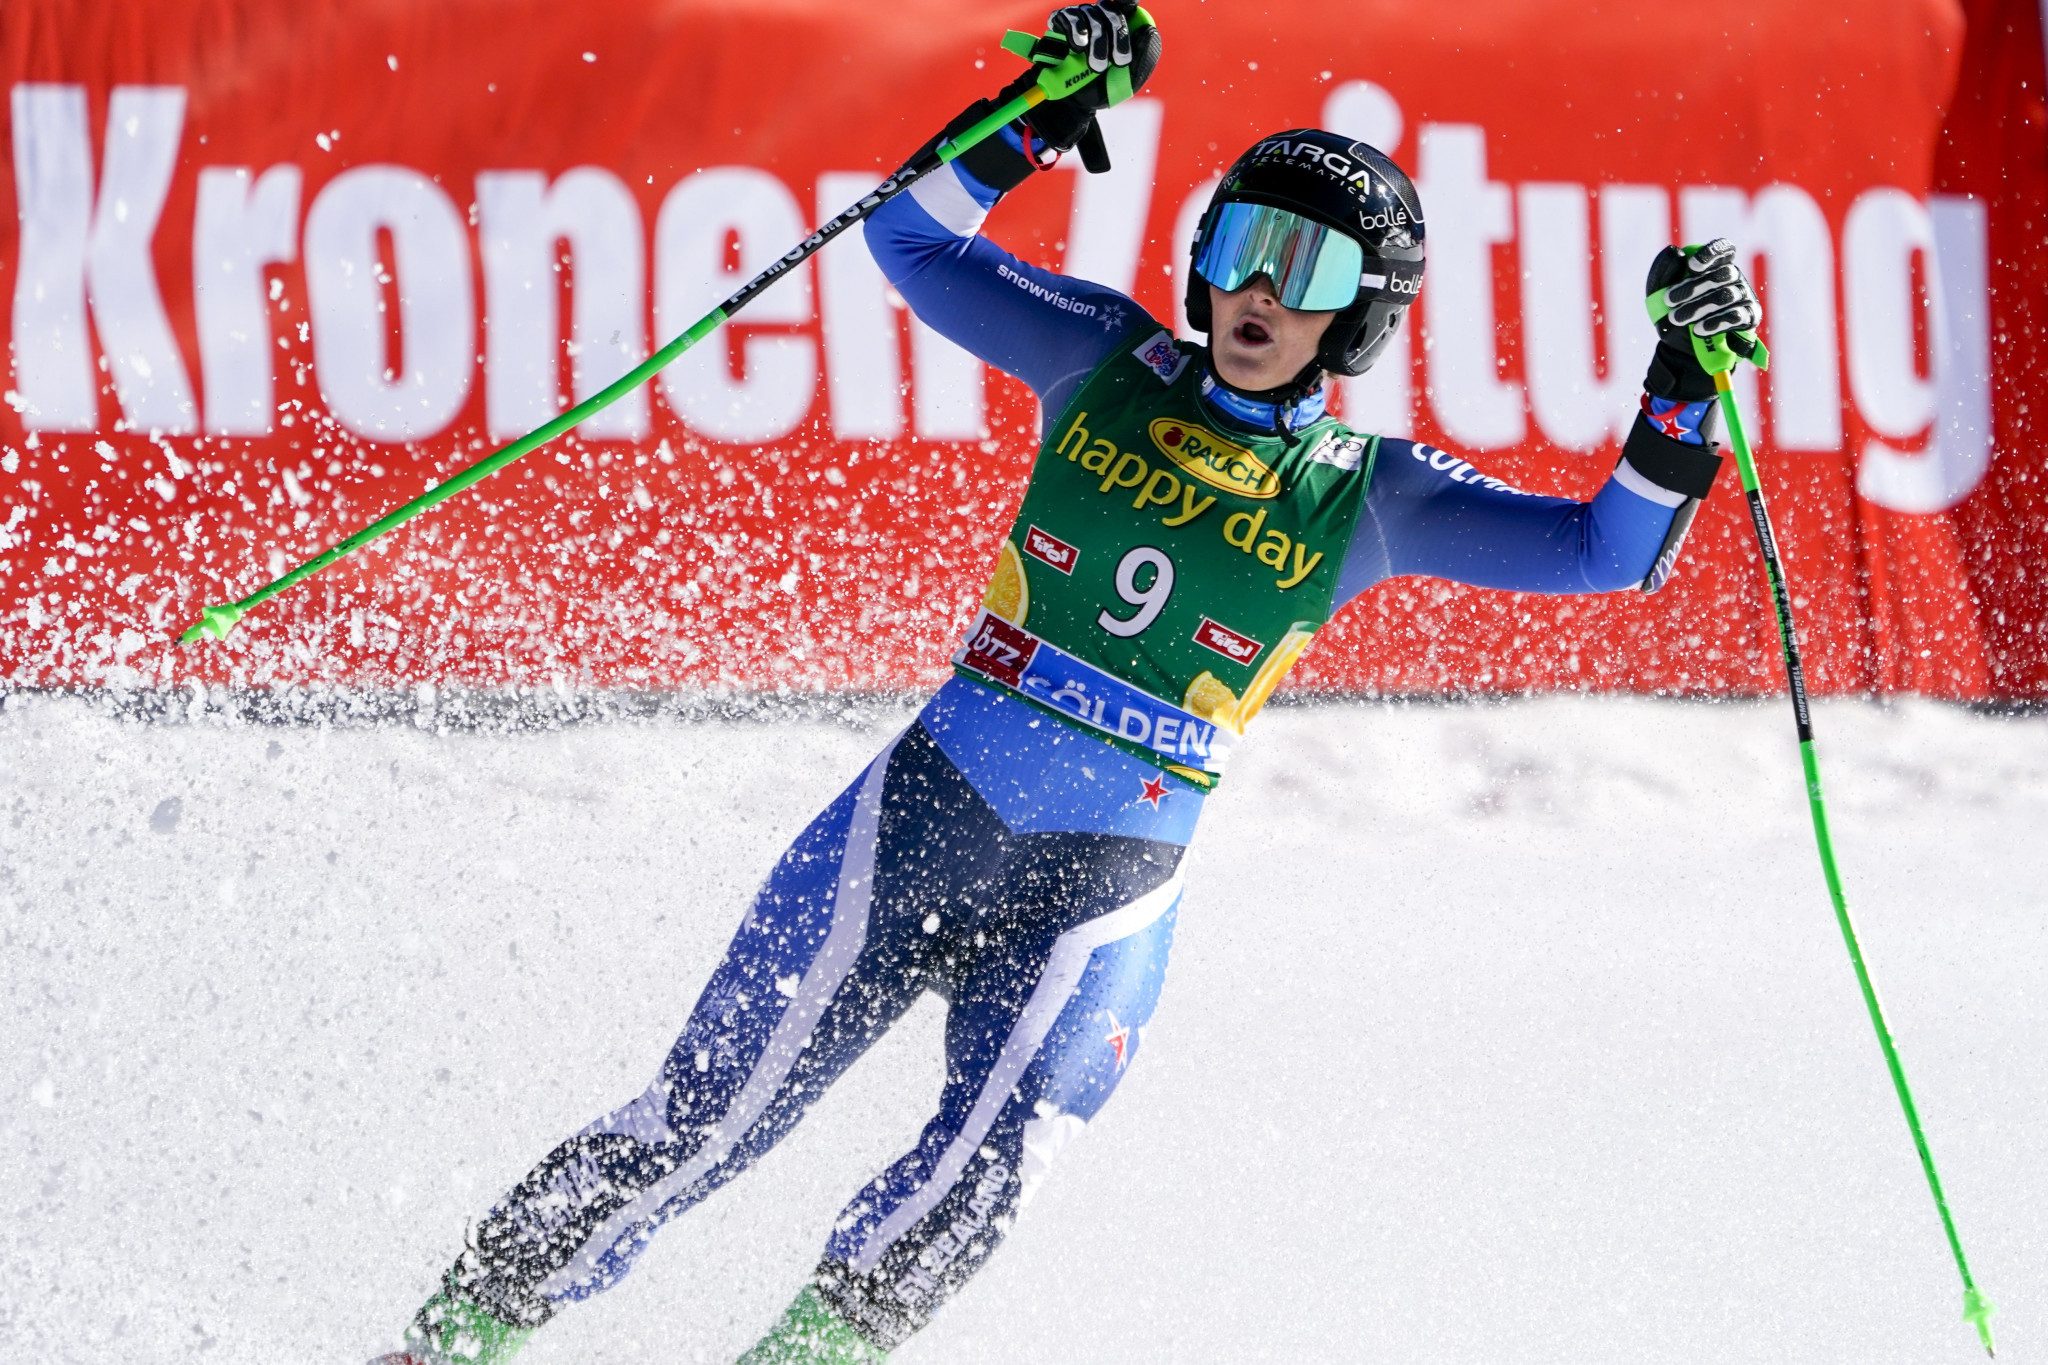 Robinson stuns Shiffrin to secure first FIS Alpine Skiing World Cup win